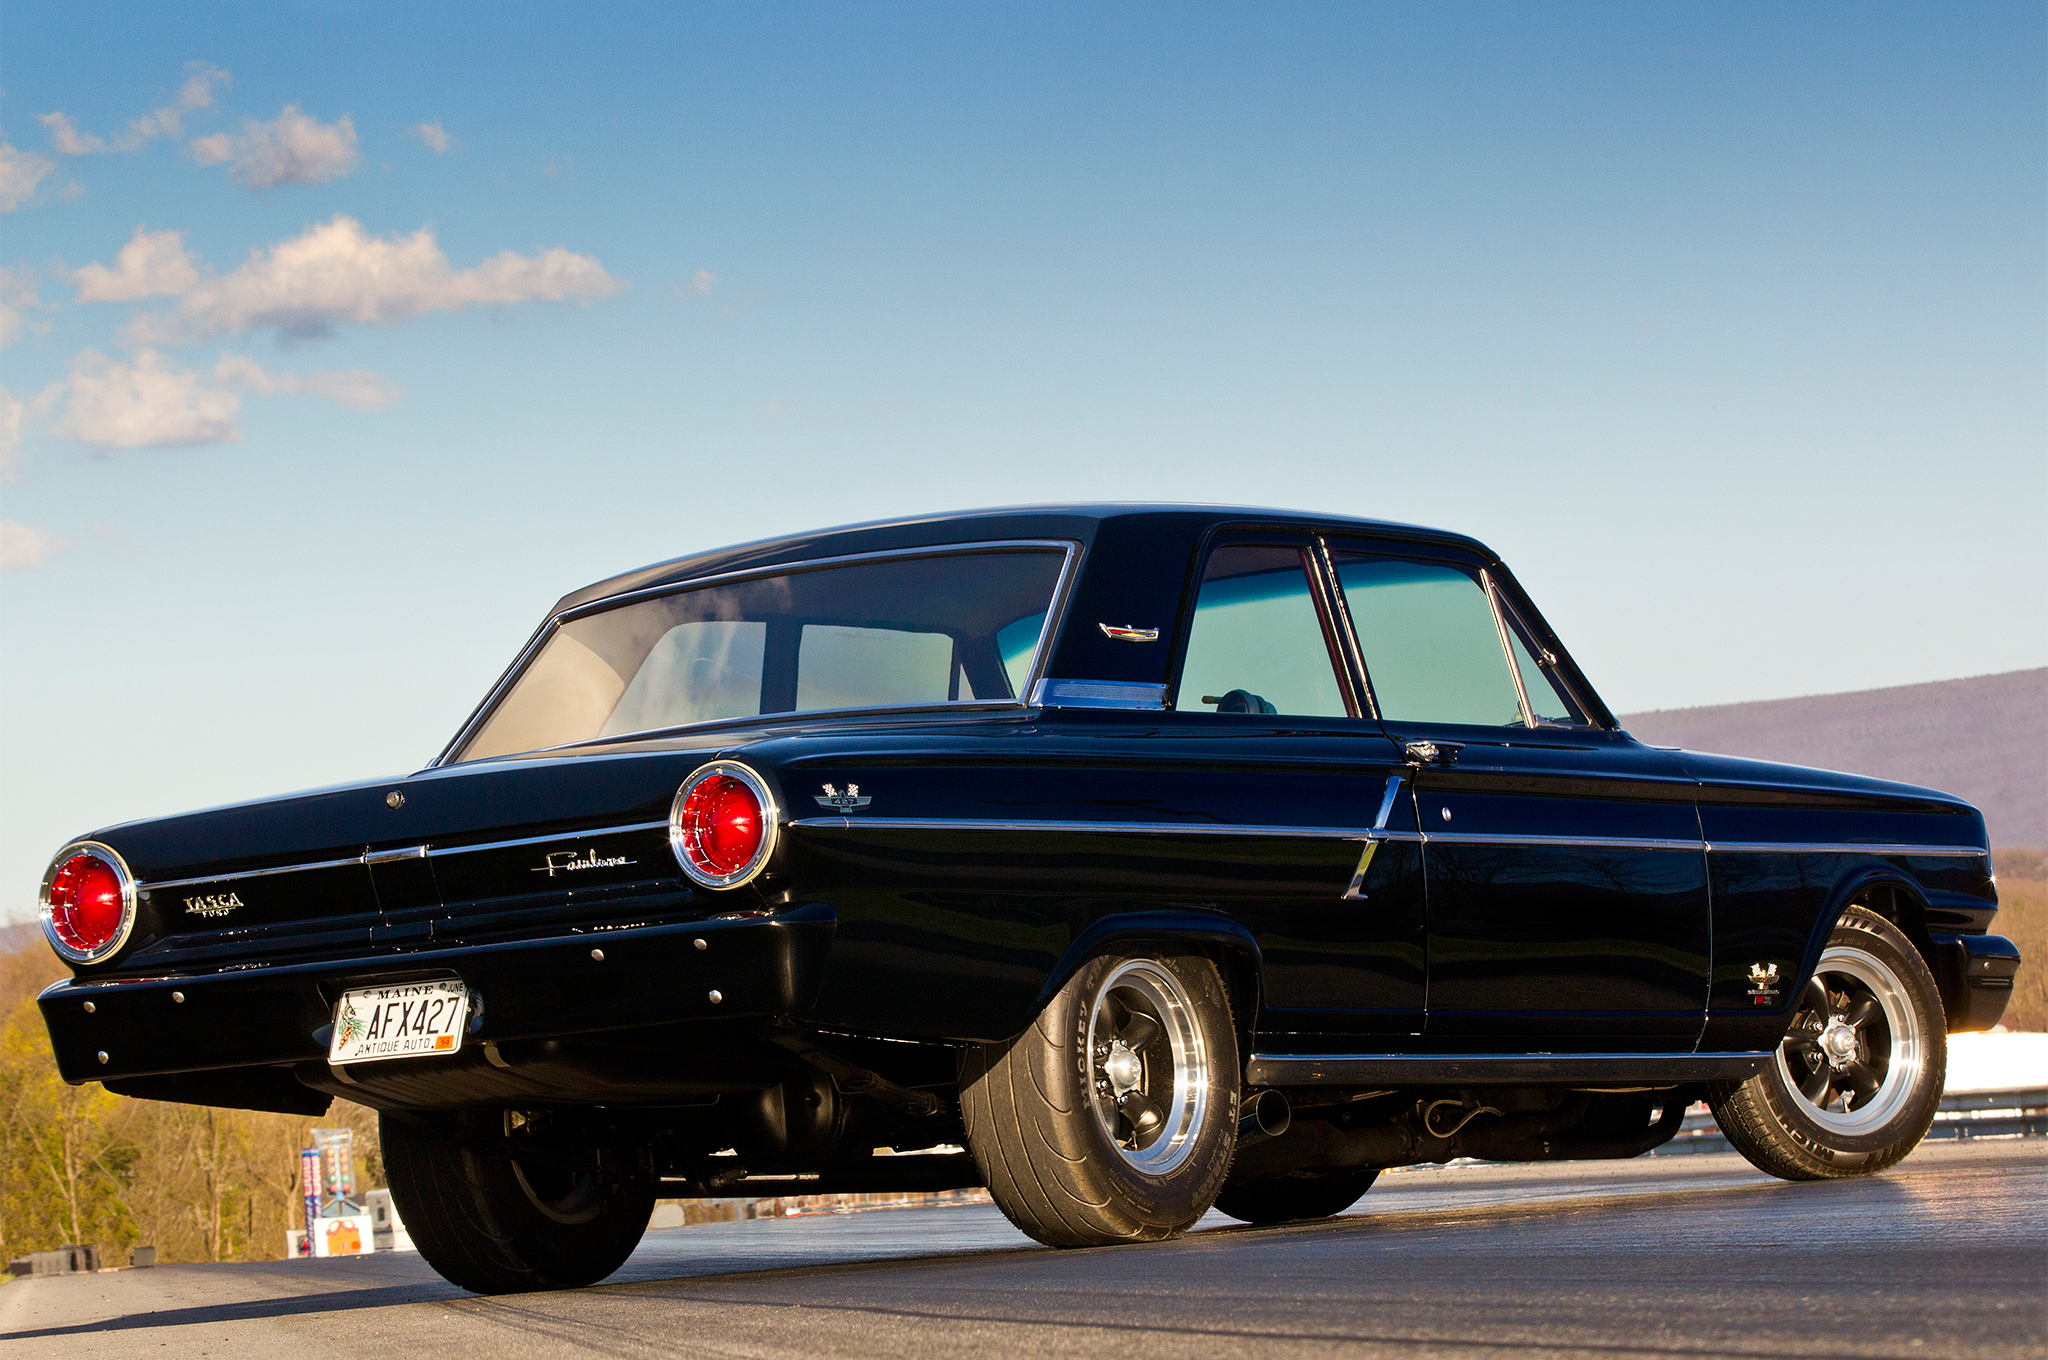 To keep the Fairlane's exterior a pure 1960s look, Jim decided to stick with 15-inch Torq-Thrust wheels. The Mickey Thompson E/T Streets launch well with the right hit of the throttle, but too much will just send them up in smoke.